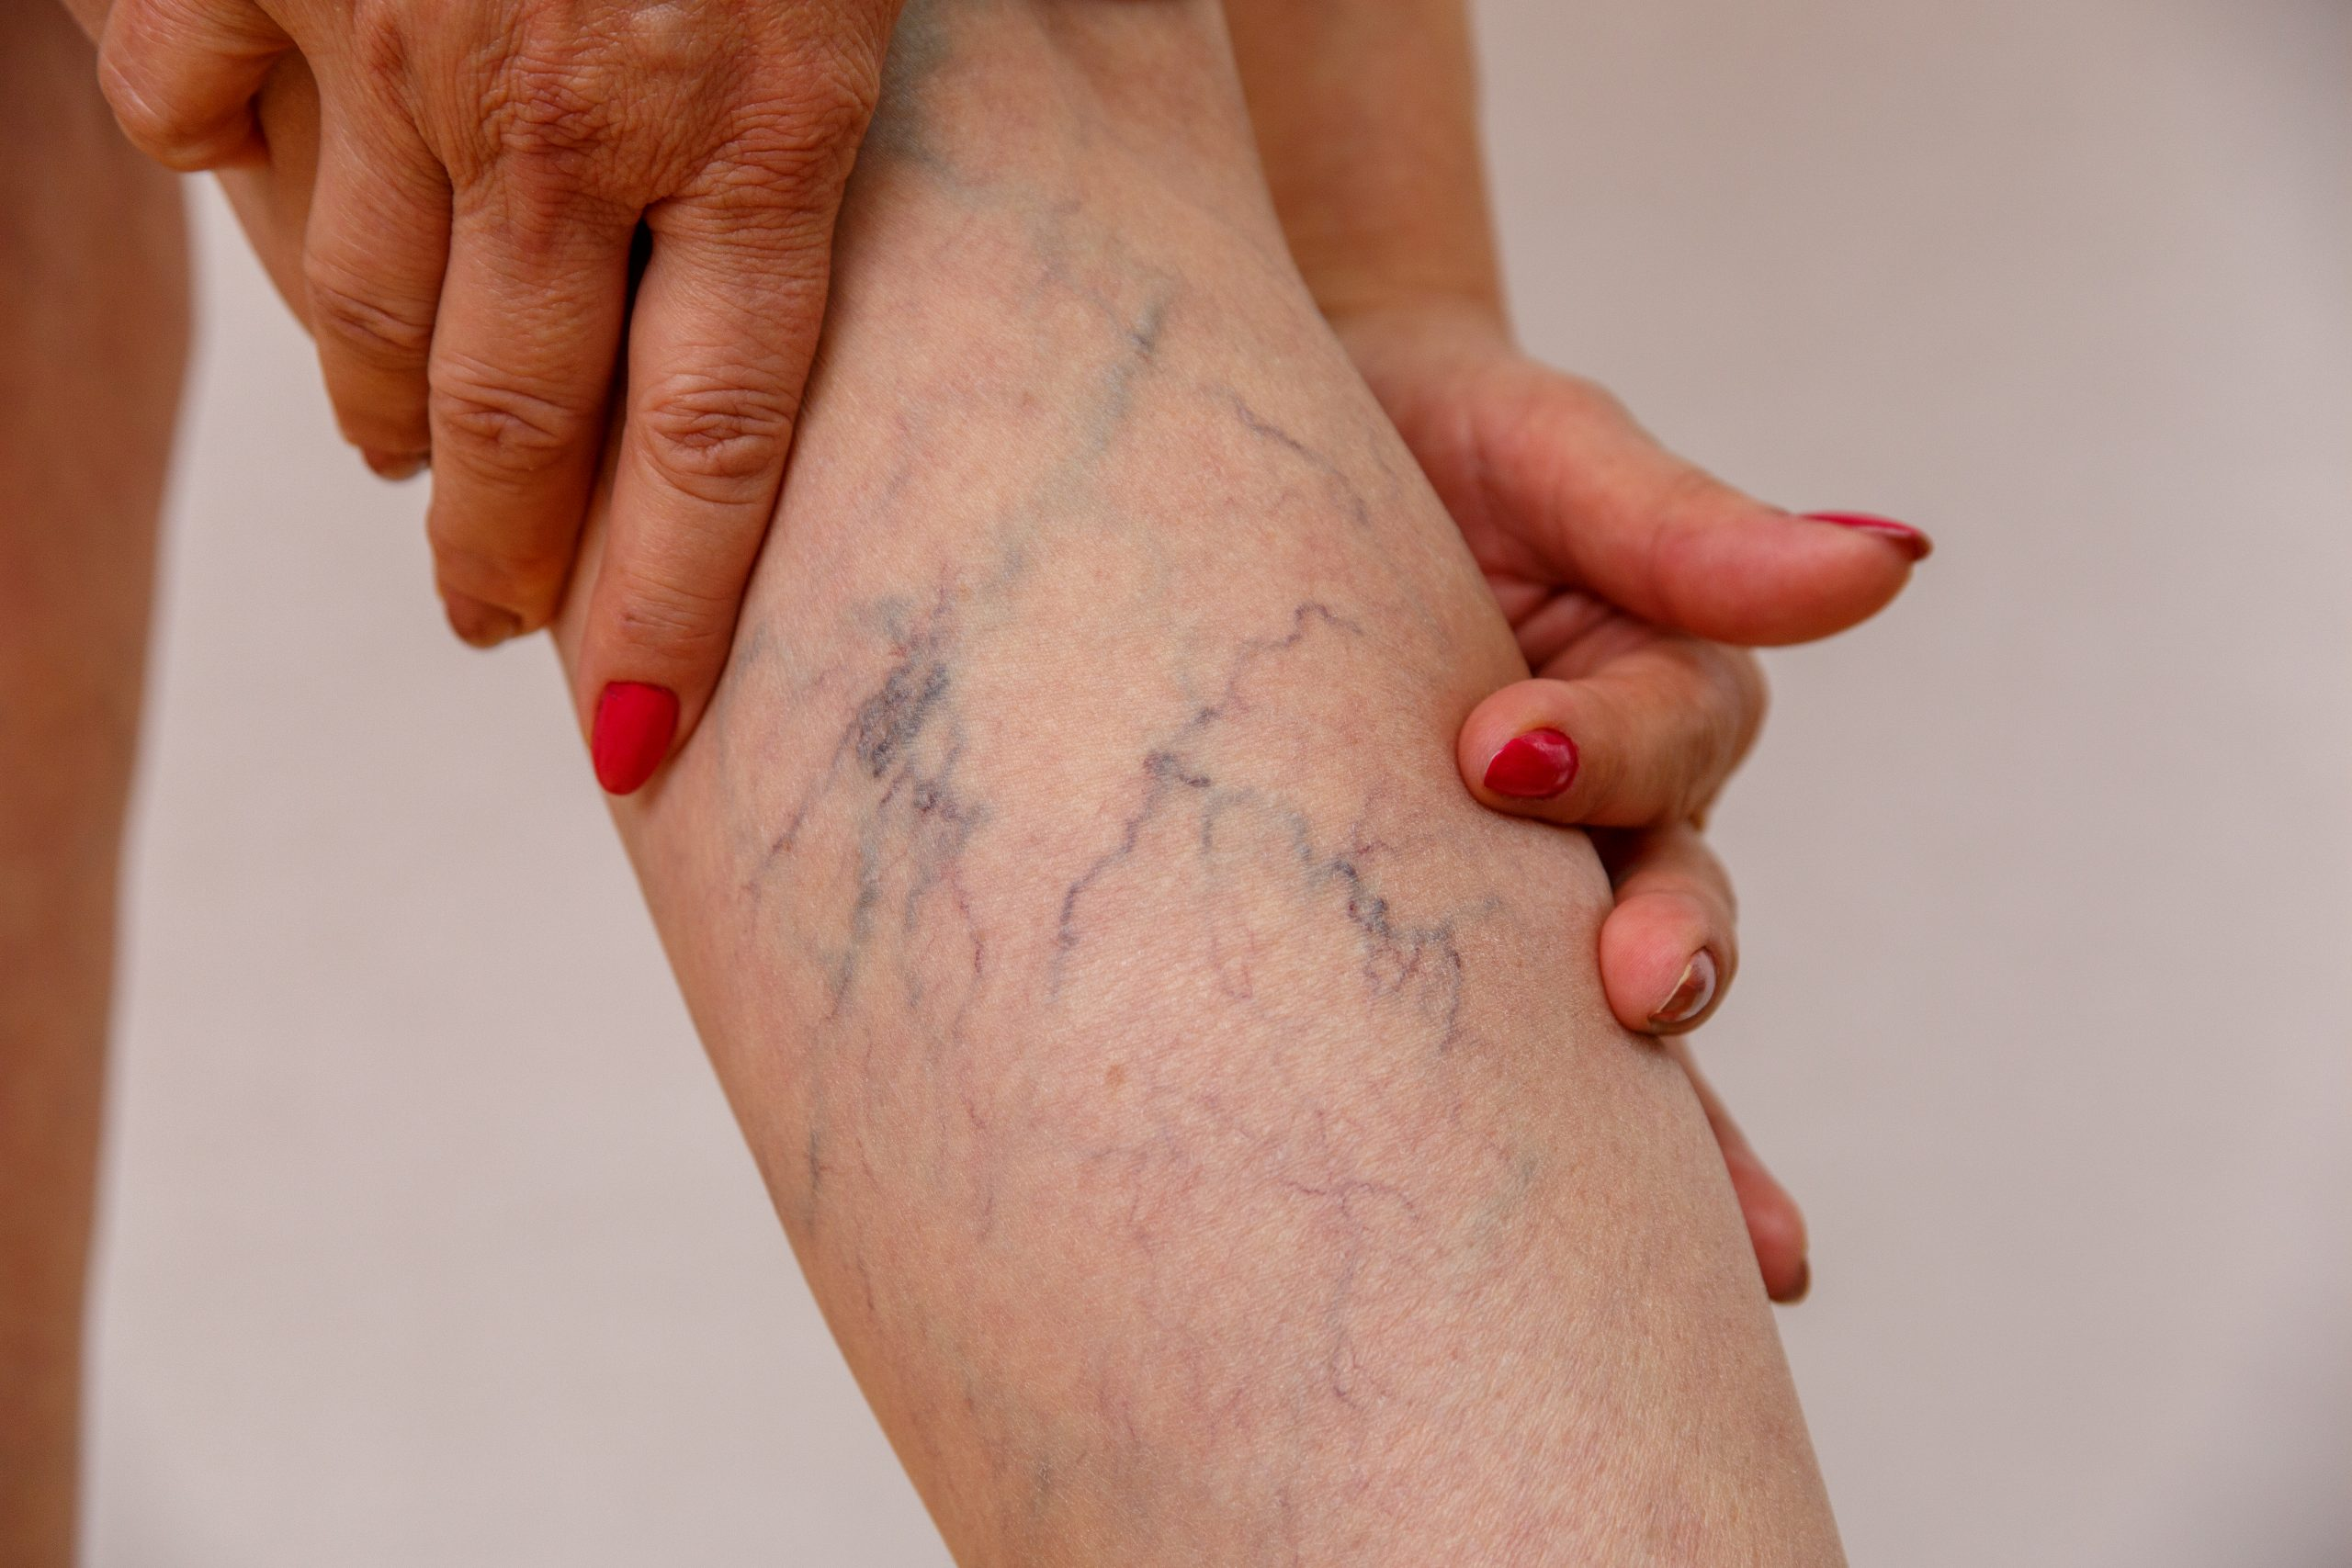 Dr. Caroline Novak and Dr. Kamran Saraf are widely considered the best vein doctors near Northport. This article introduces you to the best vein doctors and answers vein treatment FAQs.